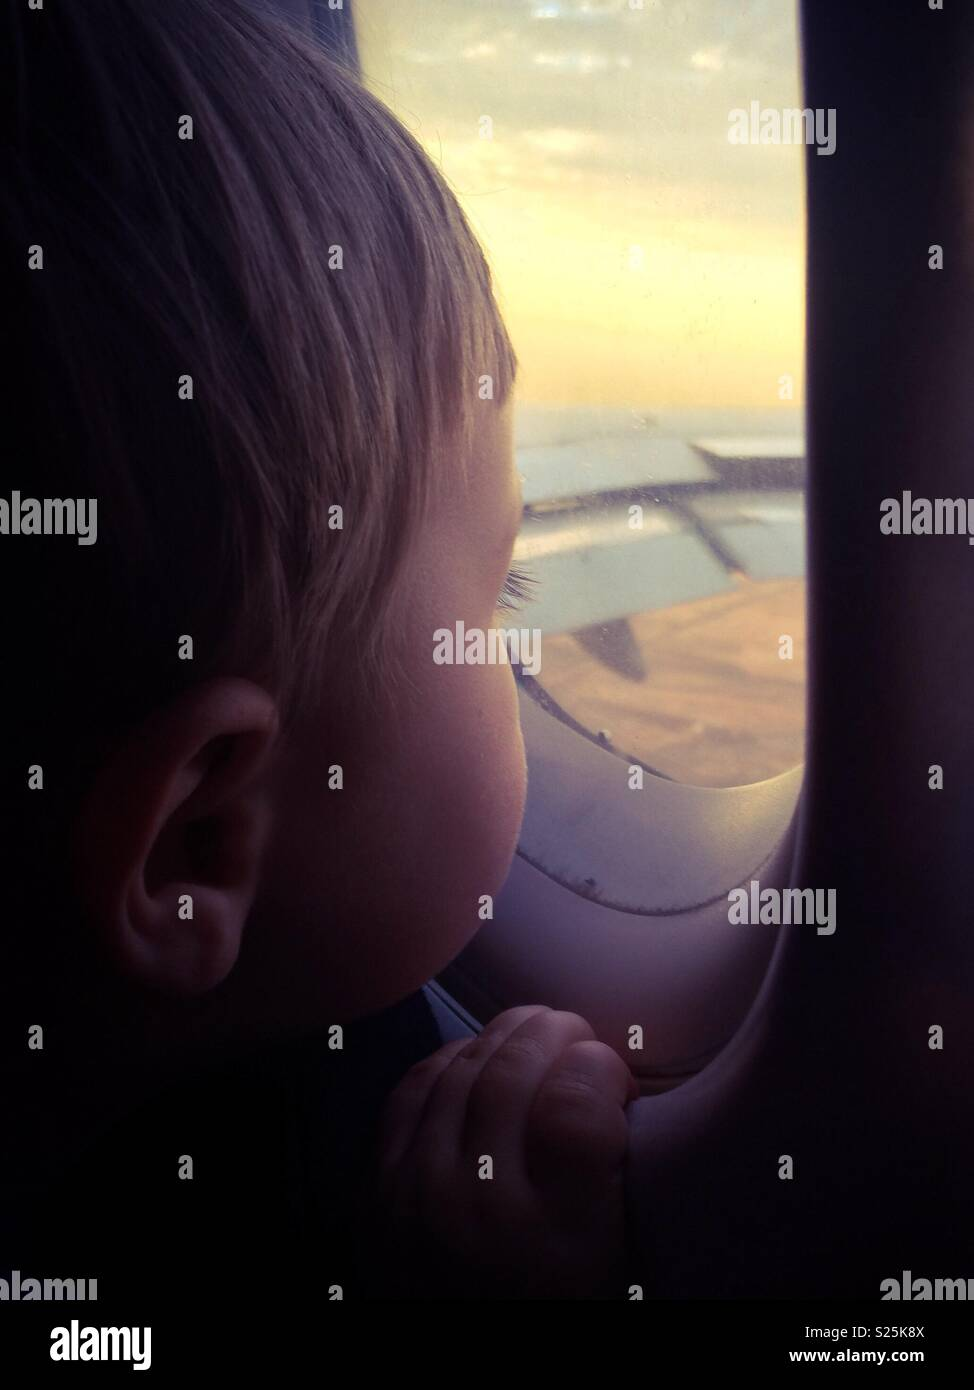 Toddler boy looking out airplane window at sunset while in flight, Autumn filter applied Stock Photo